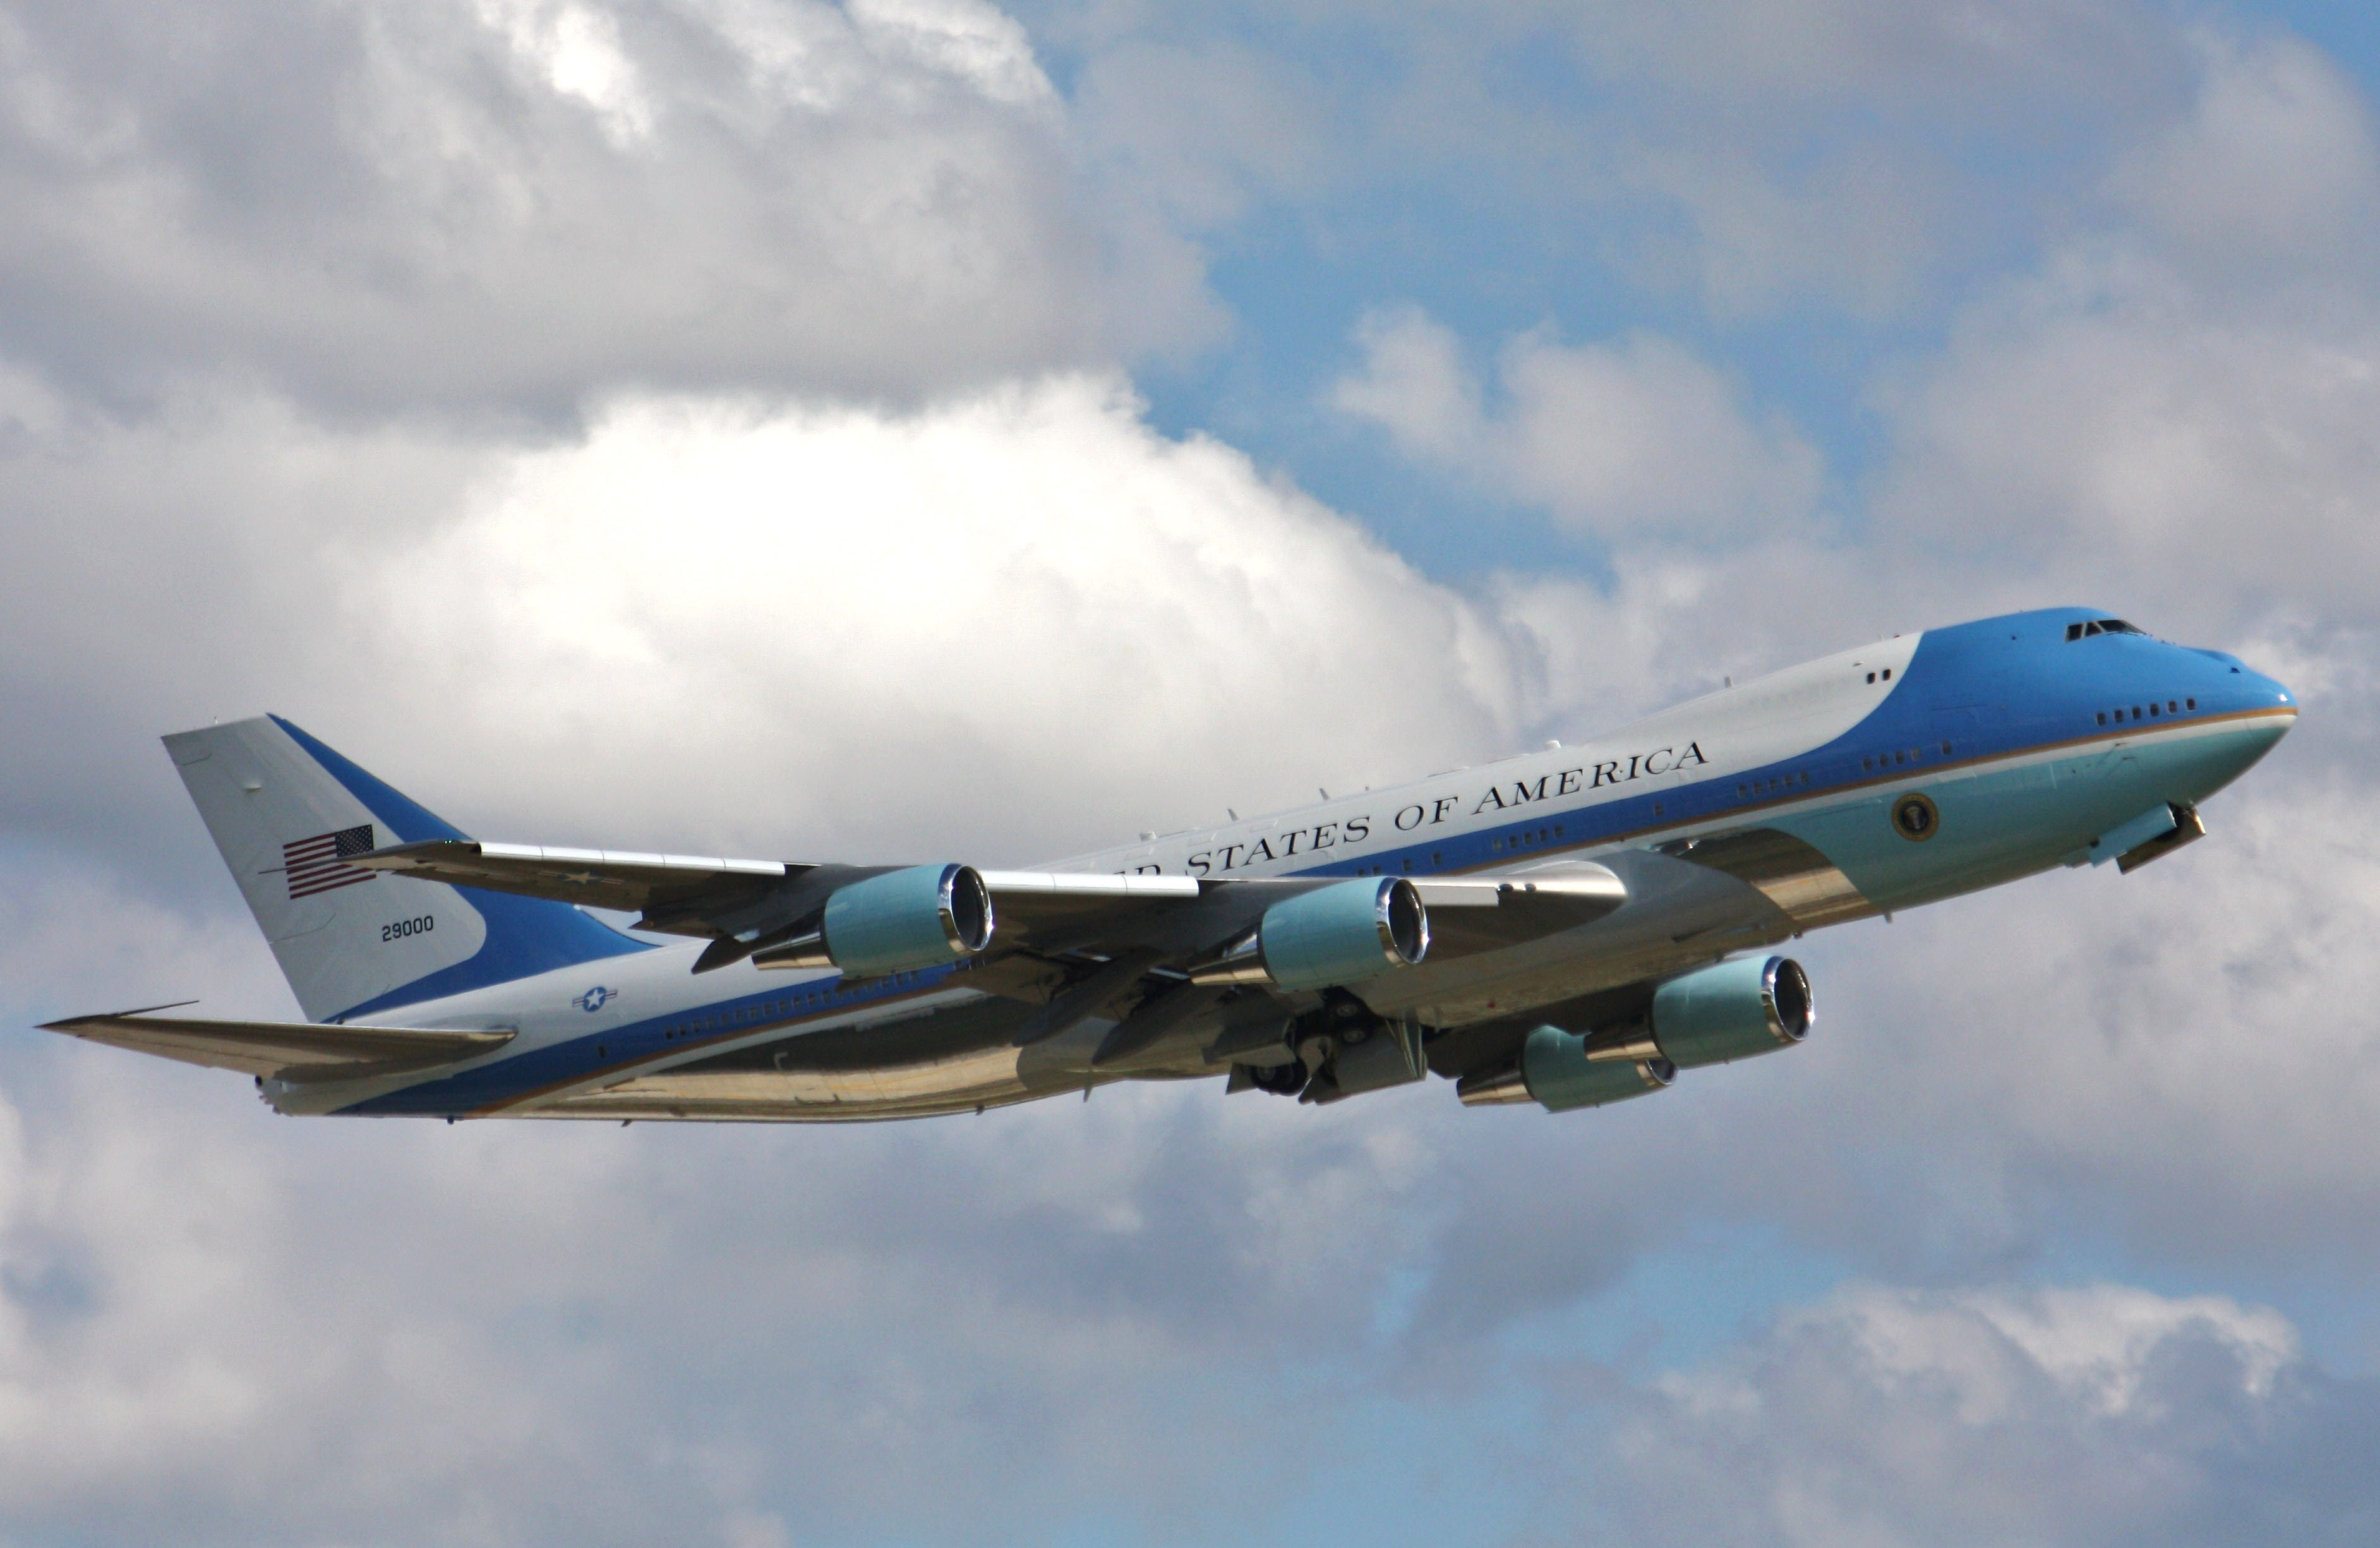 Air Force 1 Plane Pictures